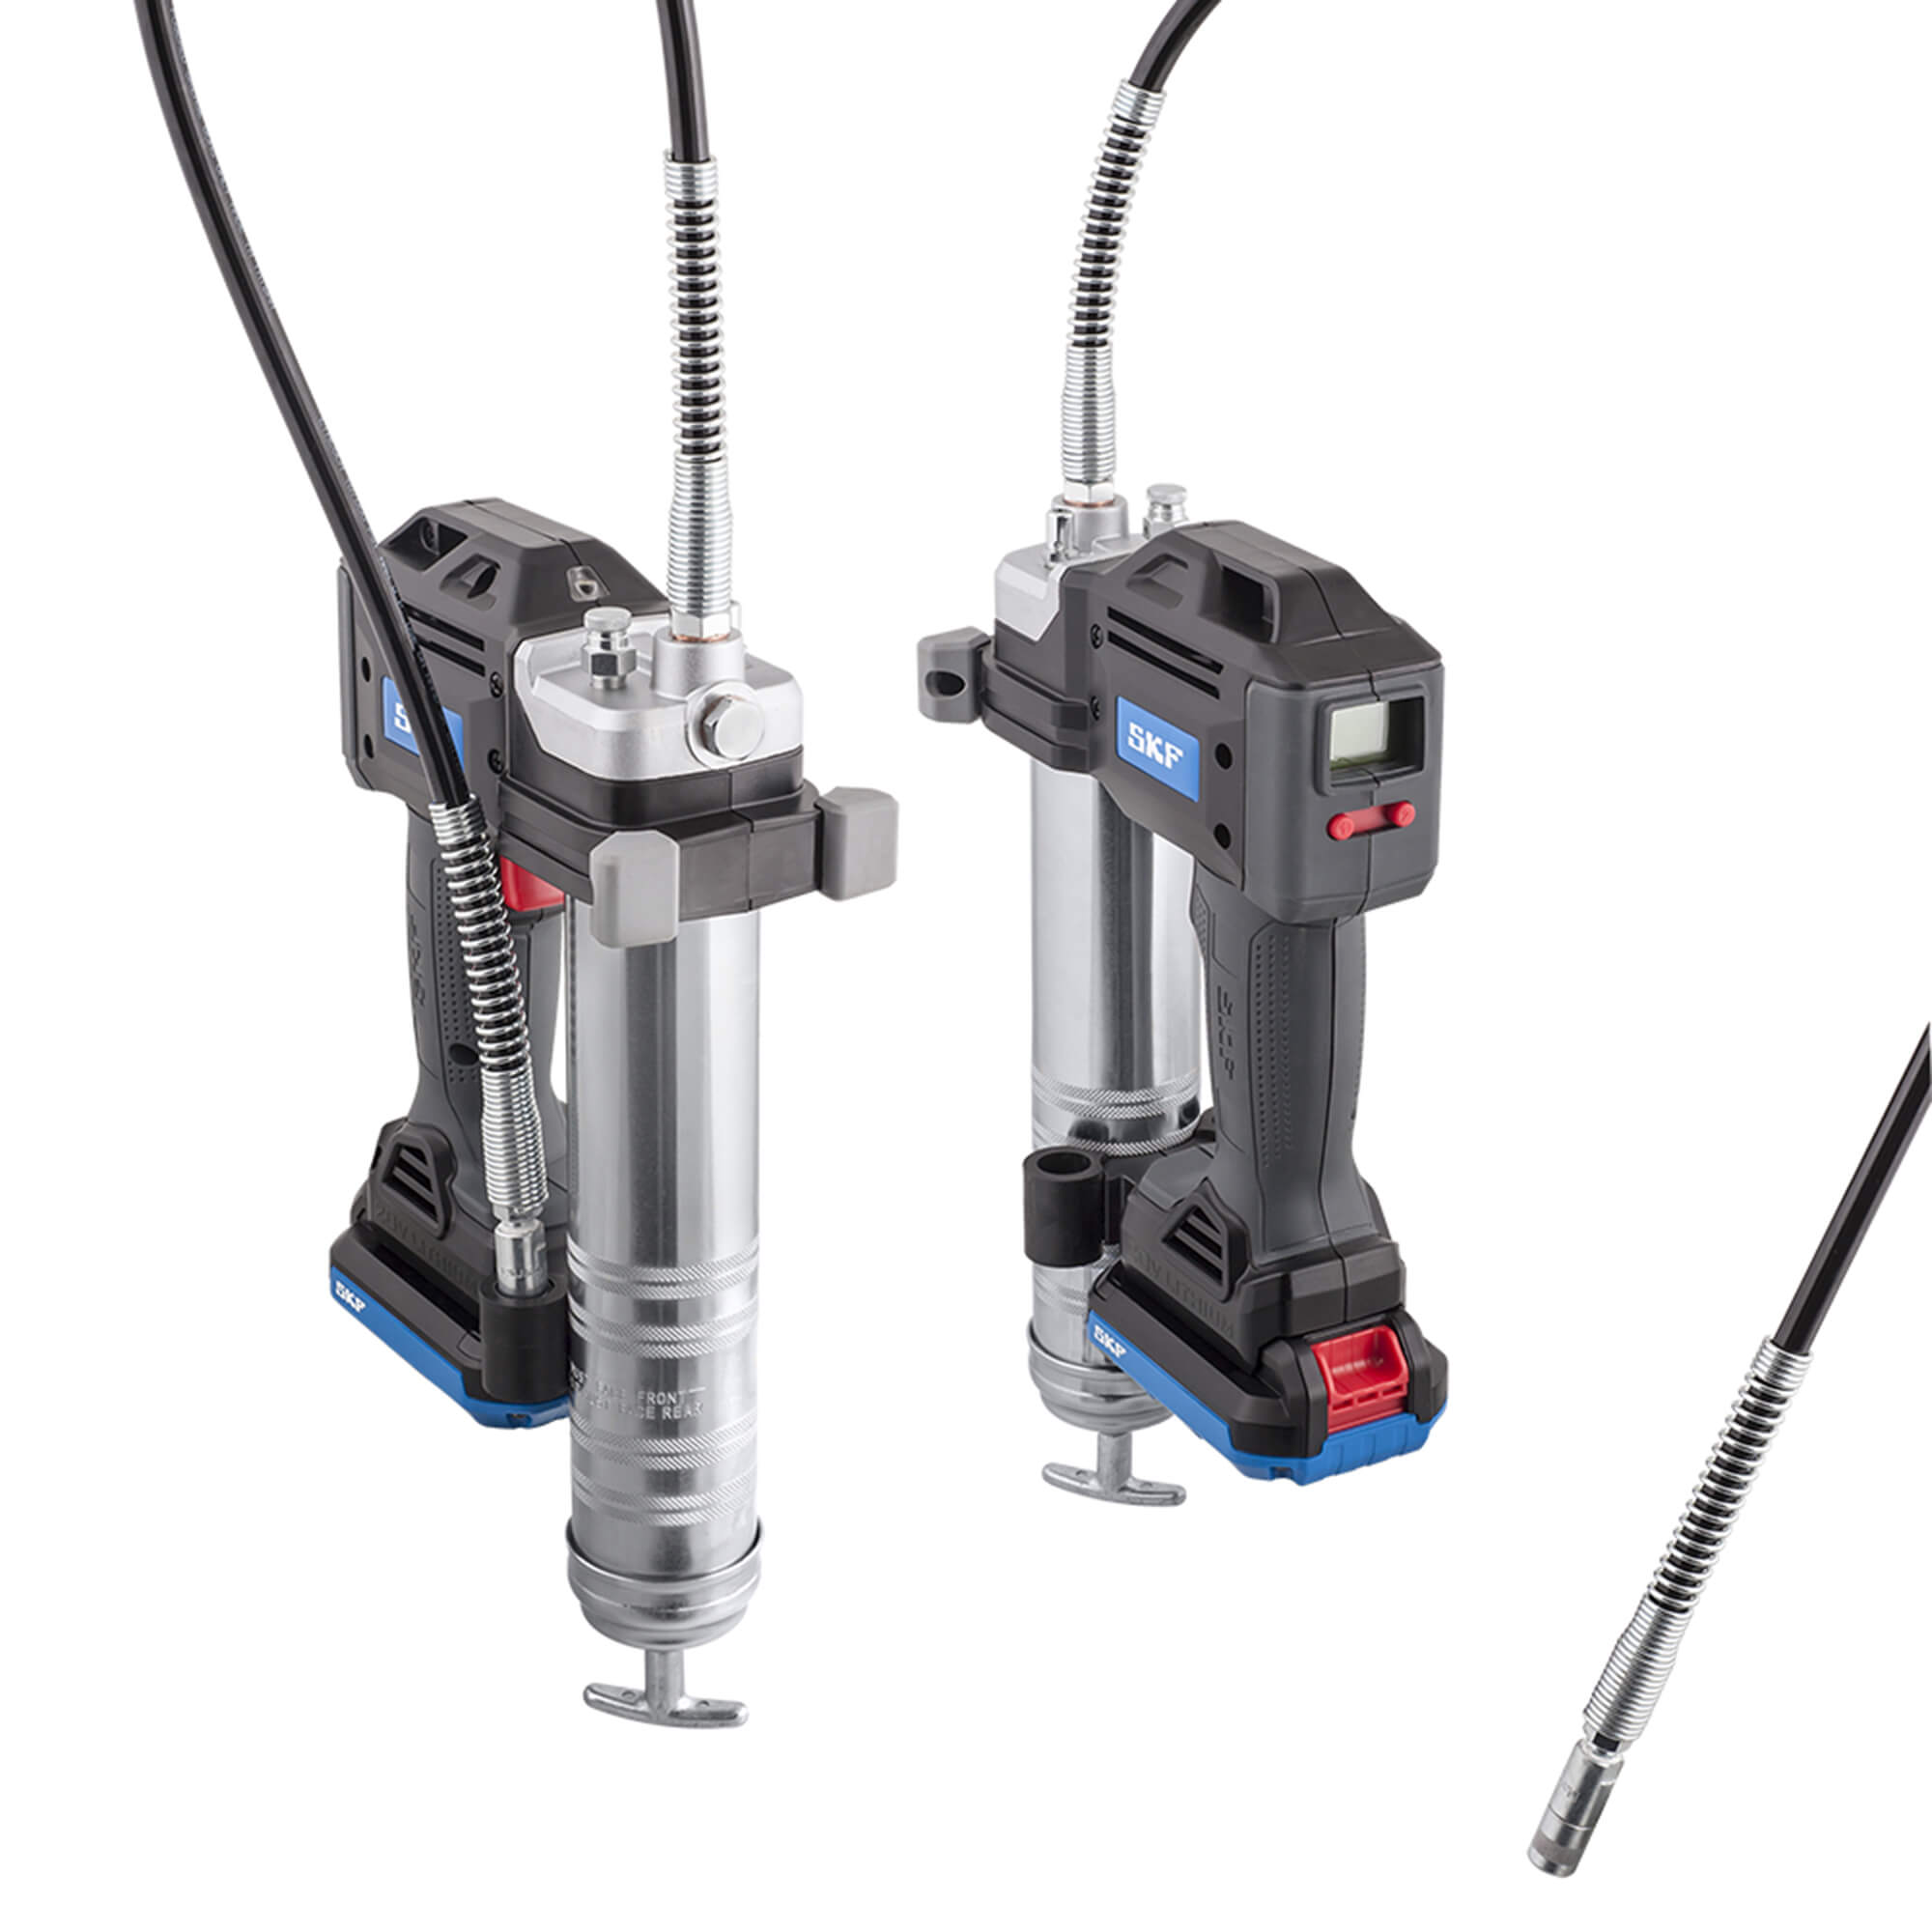 Electric Grease Gun Skf Unwraps A Battery Driven Grease Gun